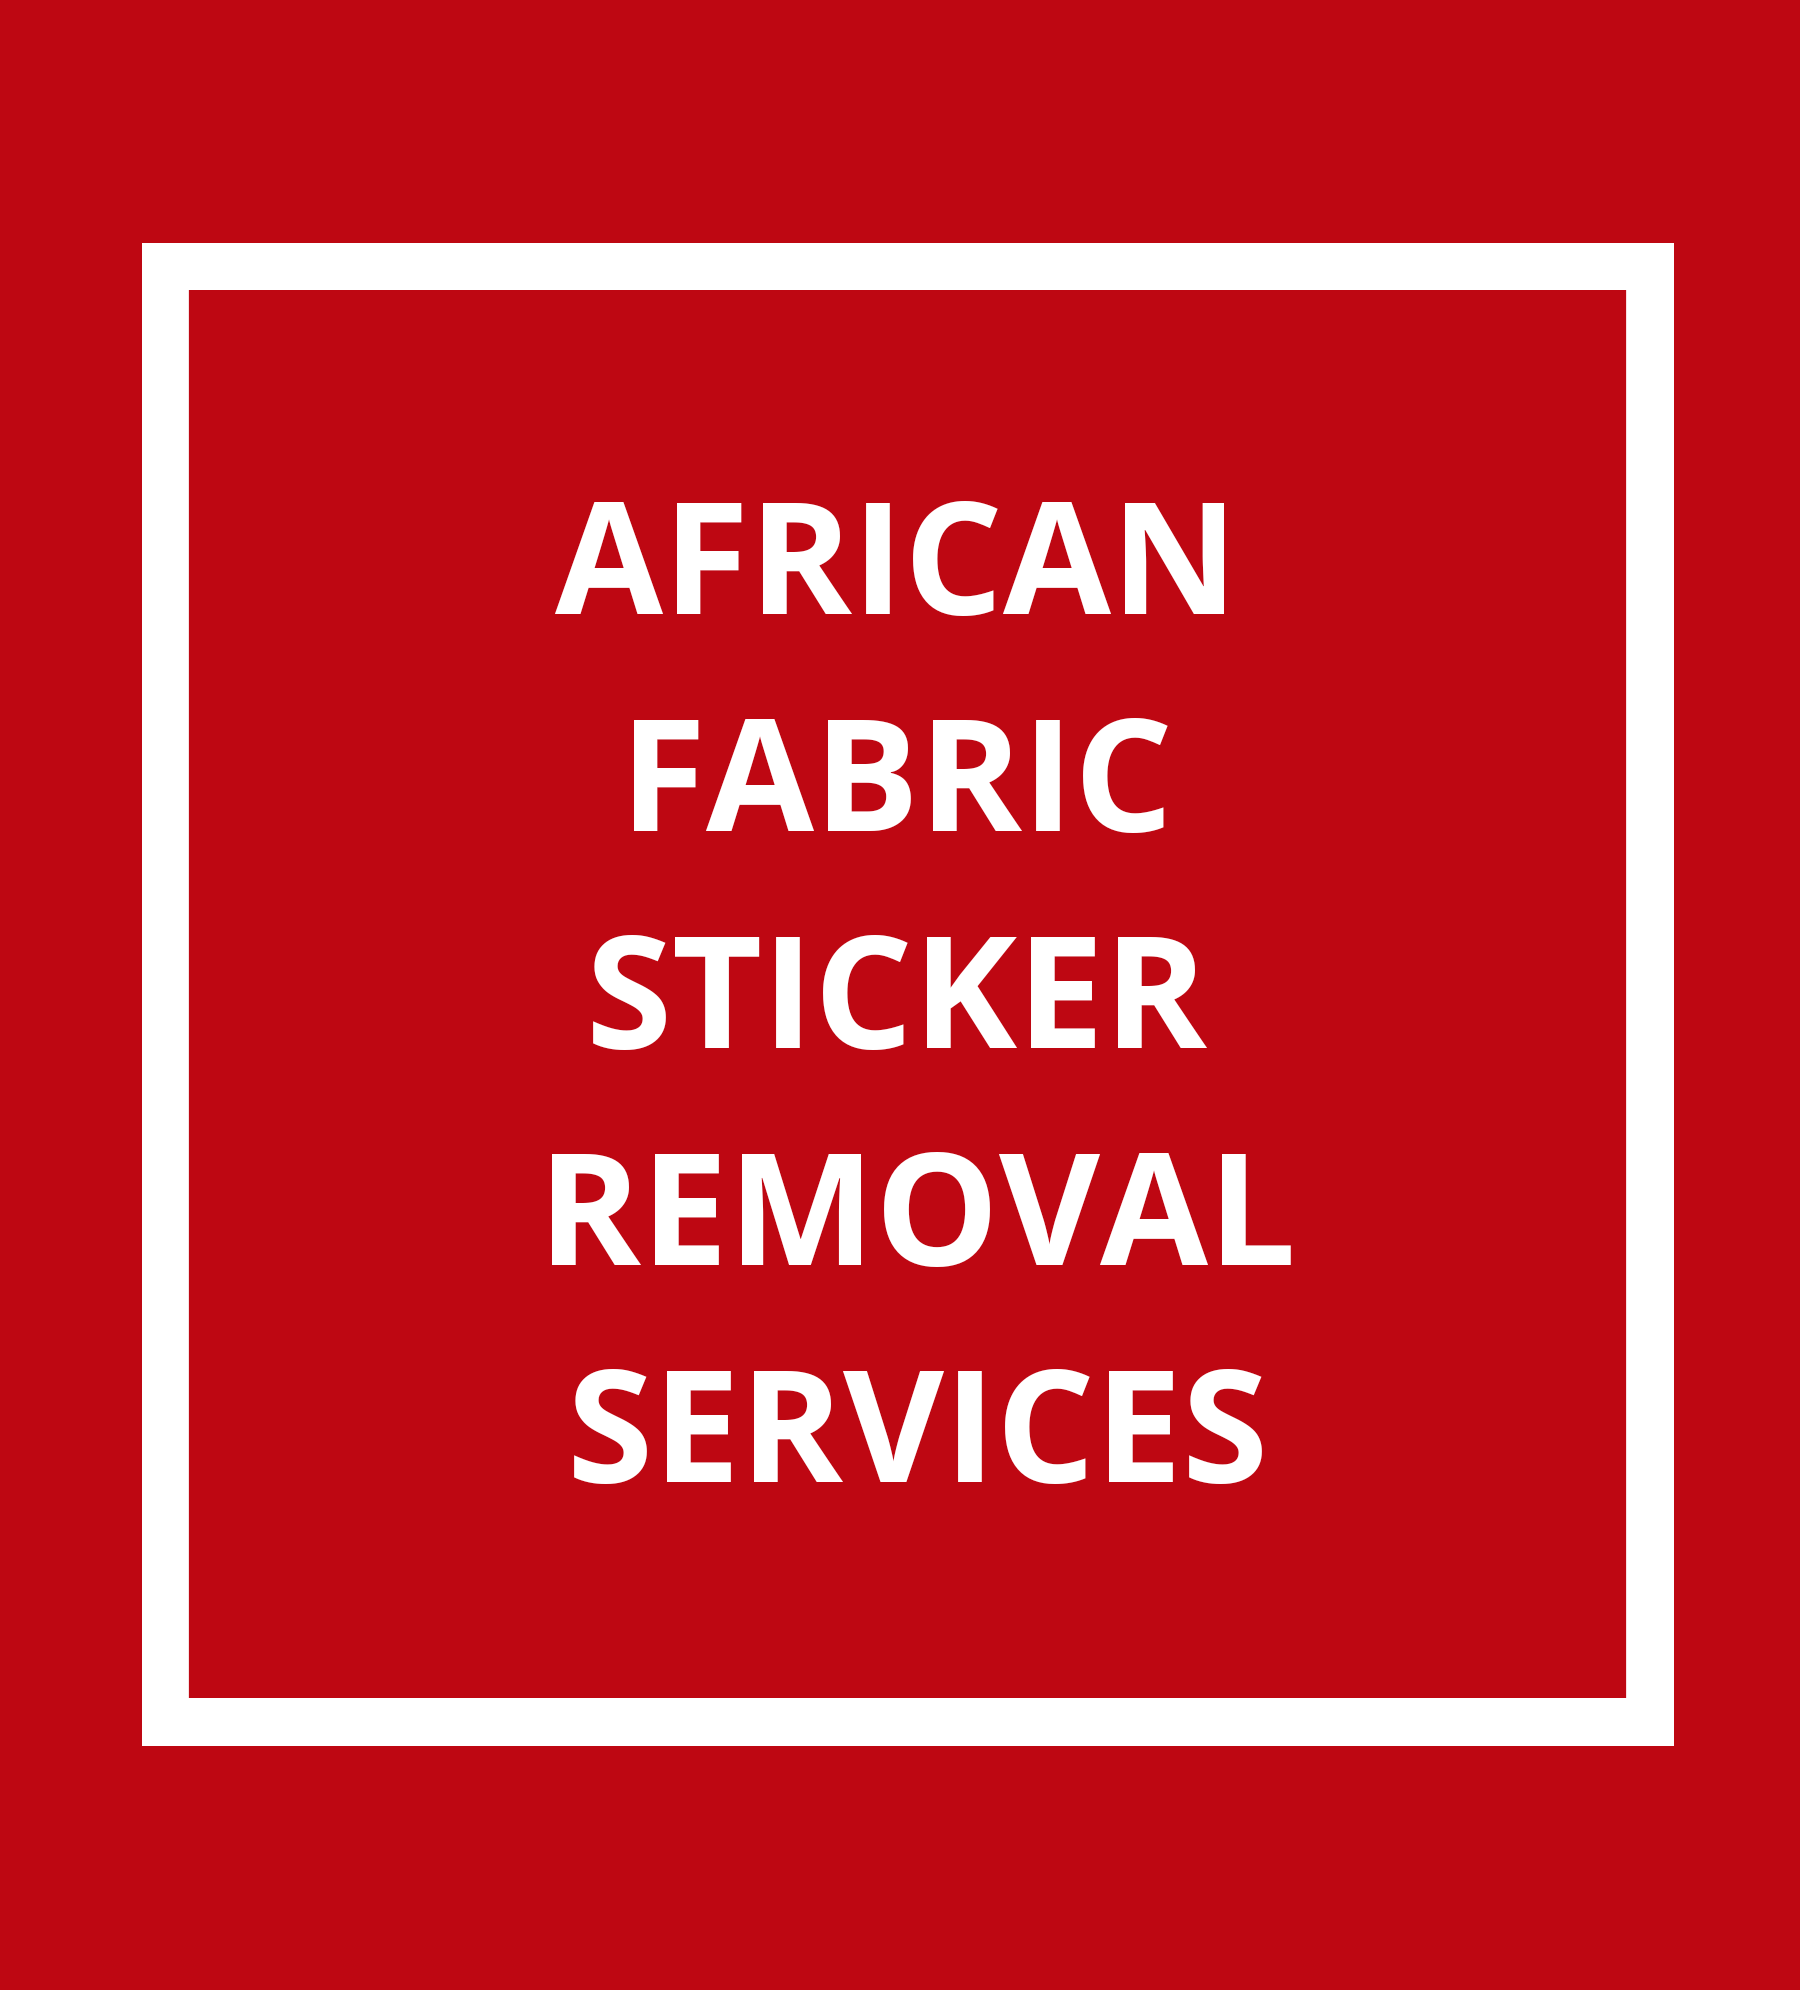 African Fabric Sticker Removal Services